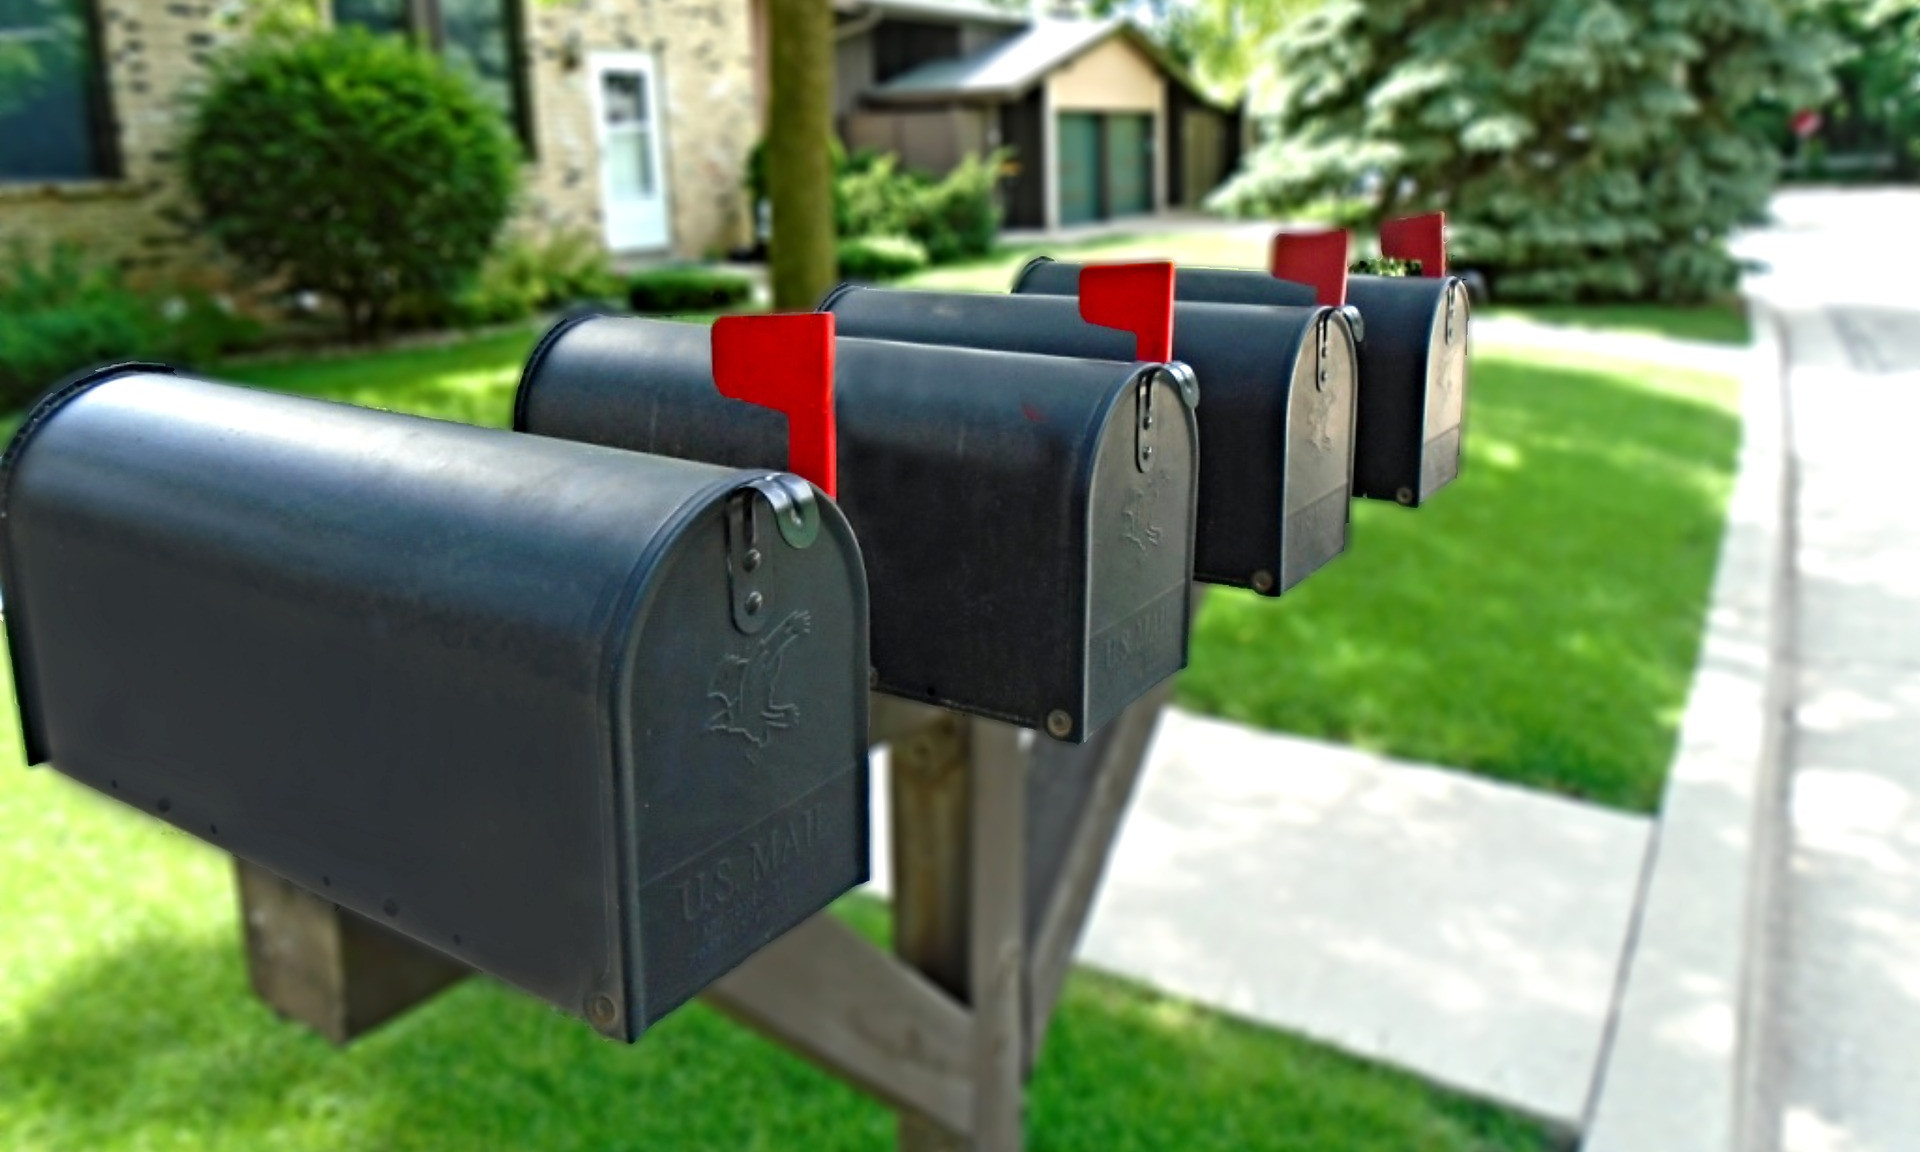 The USPS's New Service will Change Mail Marketing – And it's Free